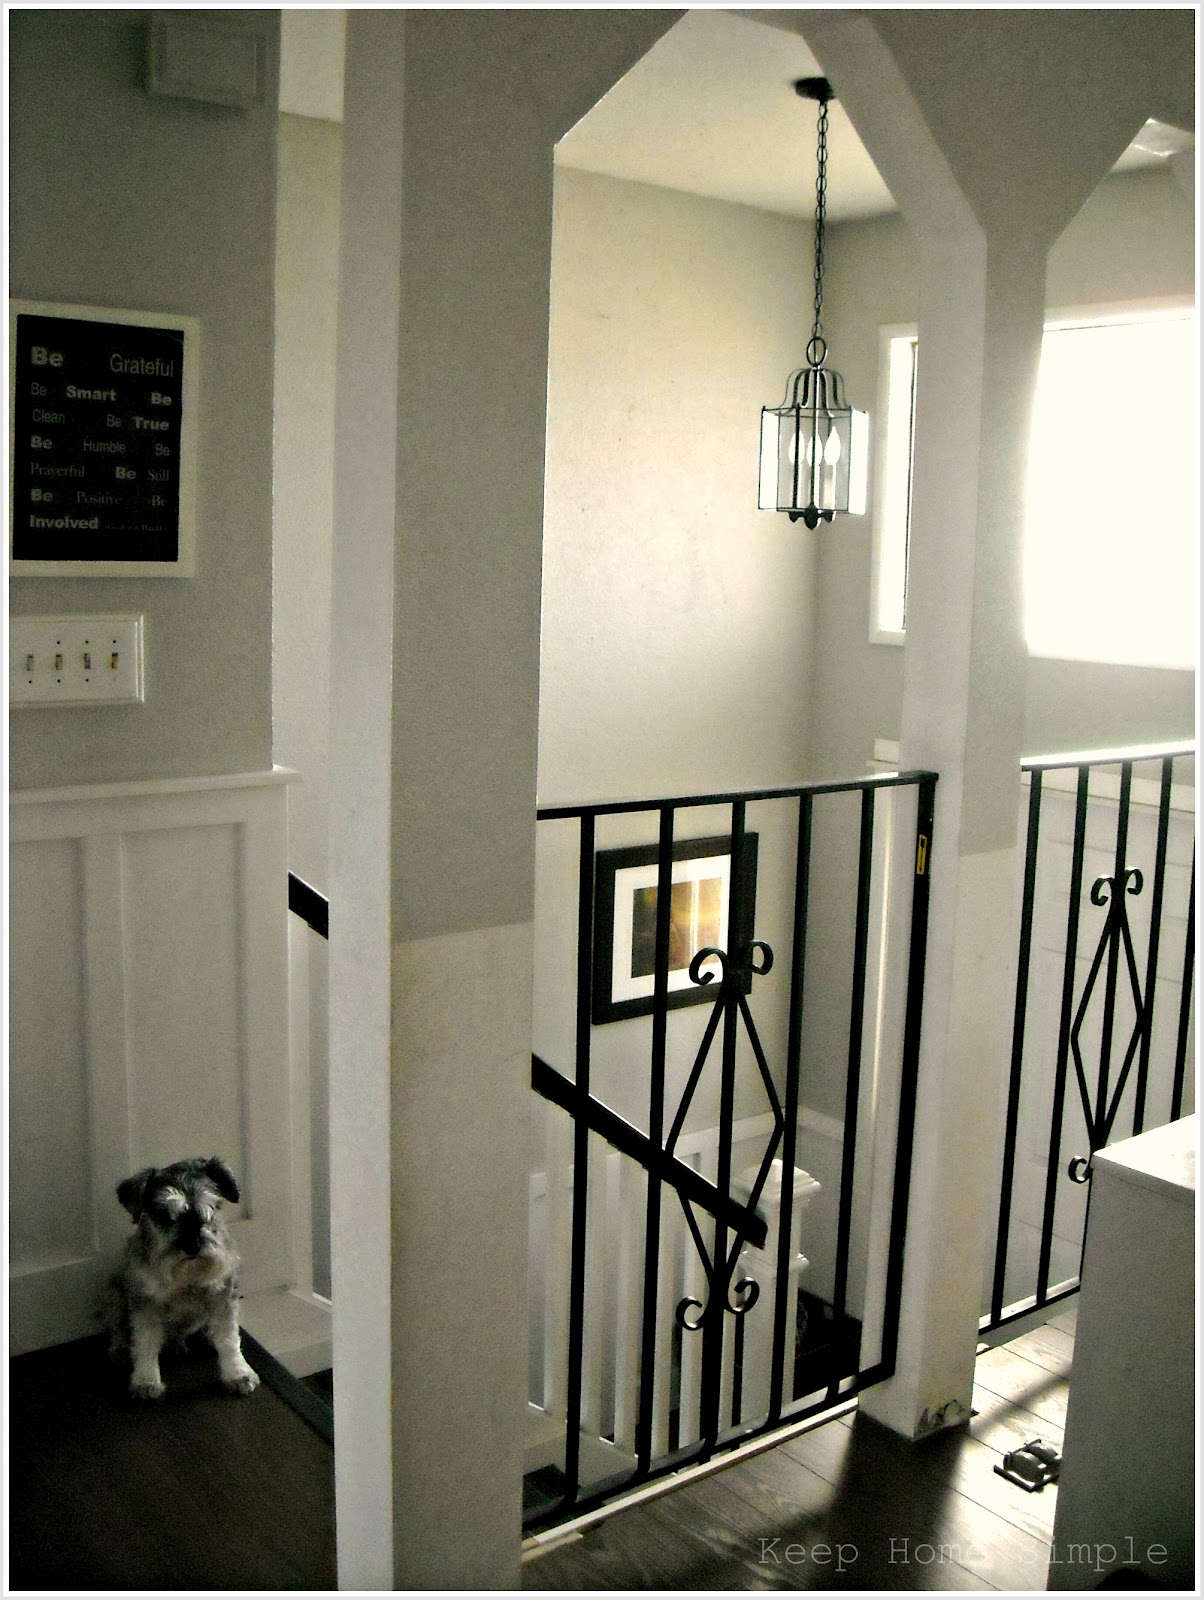 Split Entry Foyer Lighting : Keep home simple new entry light